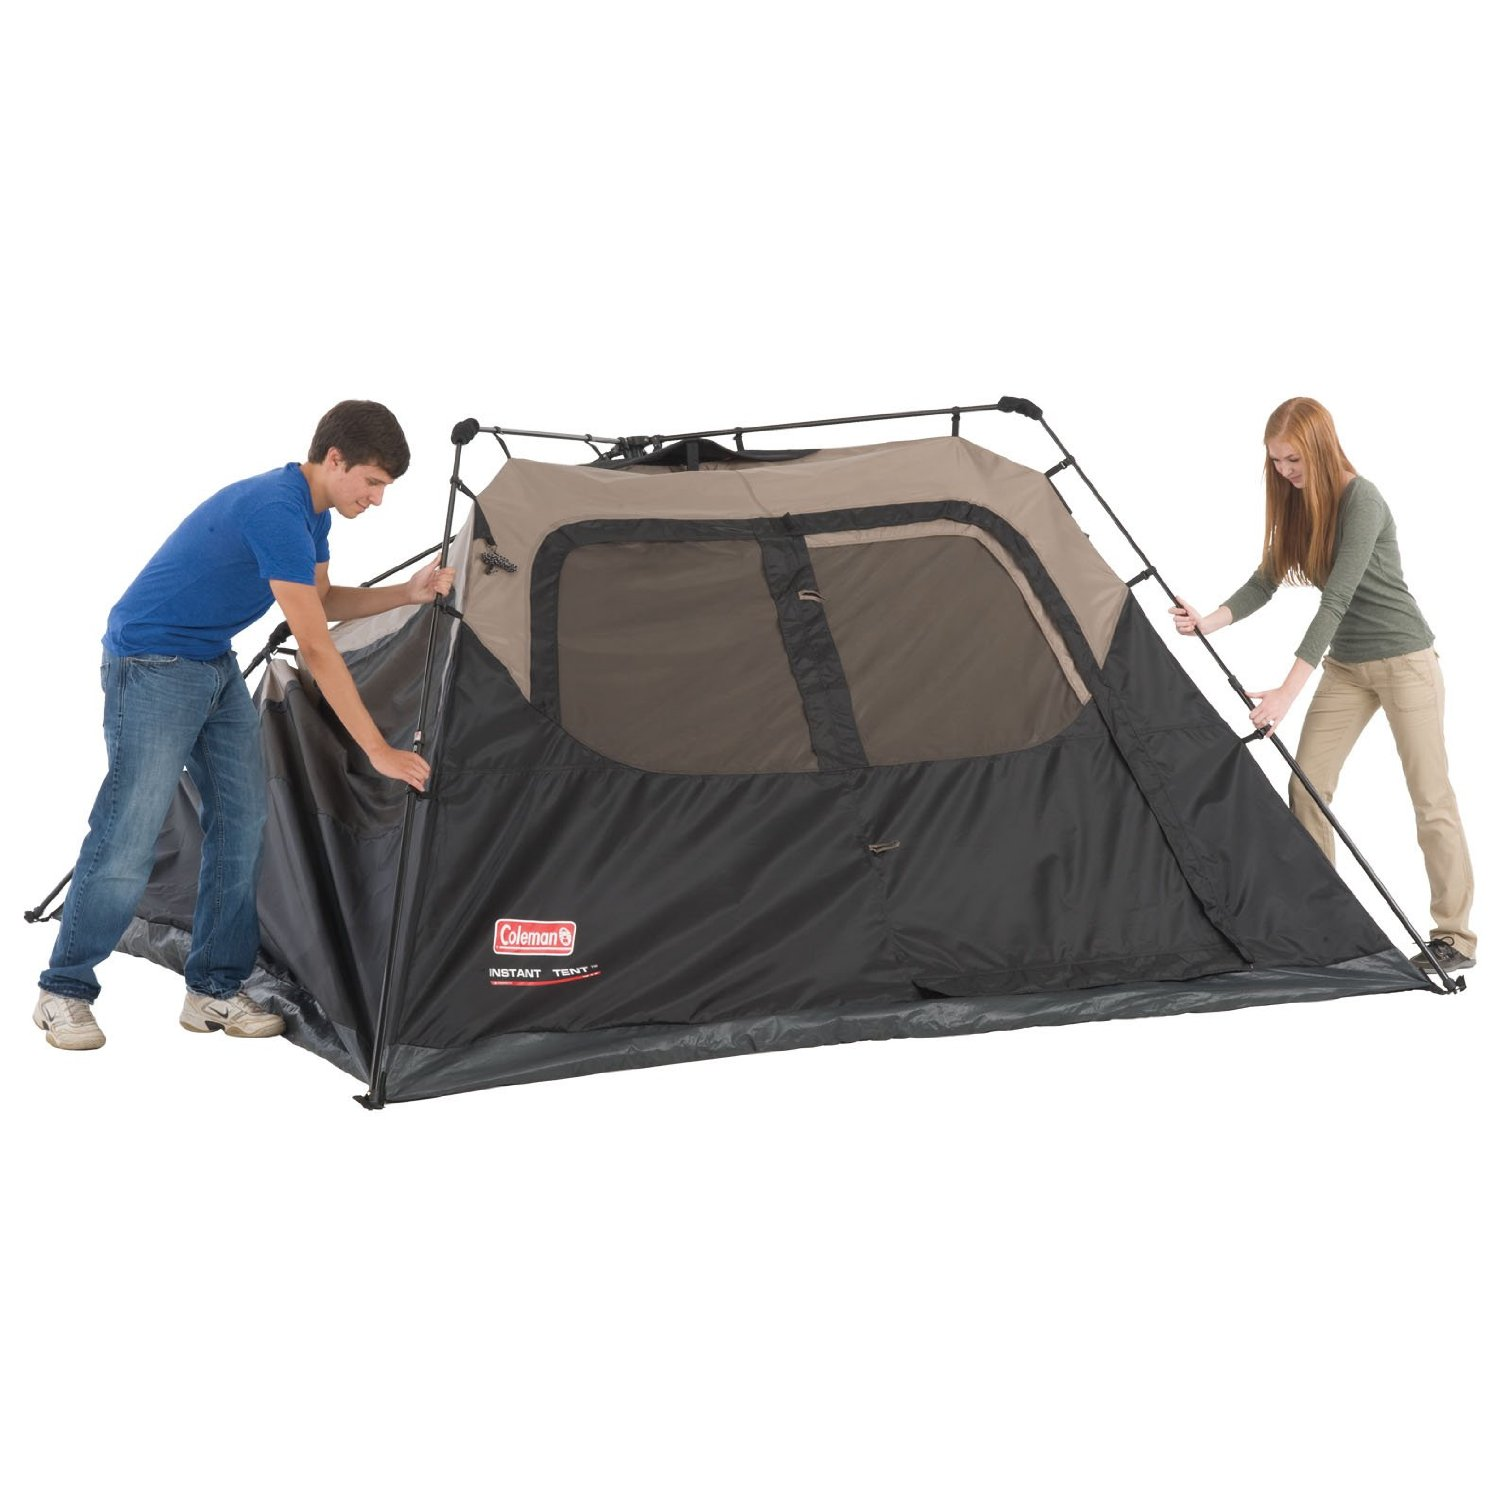 Affordable Instant Shelters : Coleman person instant tent stuff for camping all